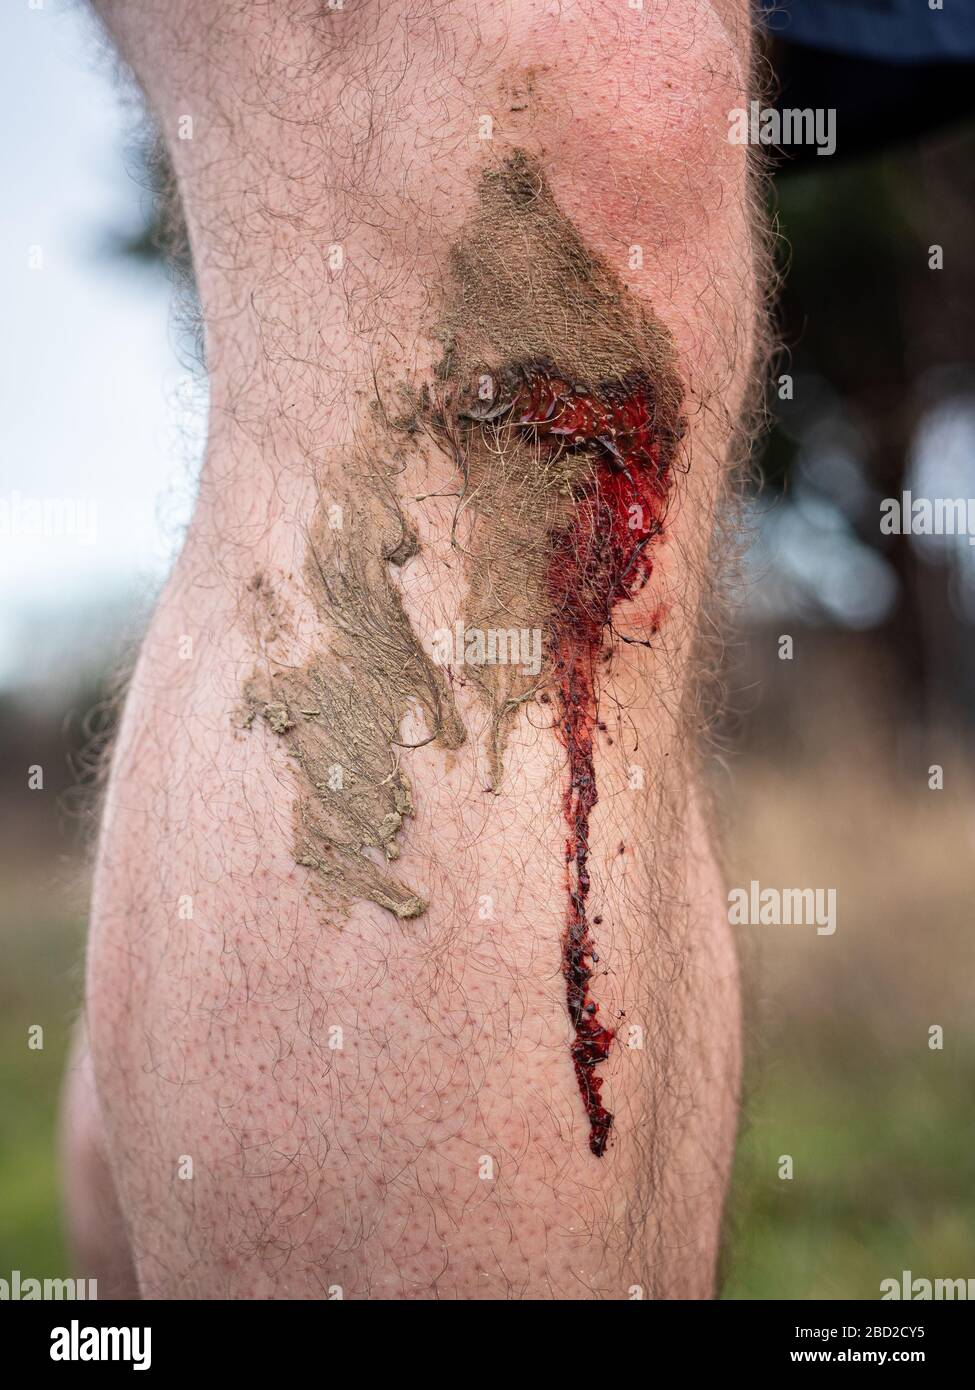 A runner's knee with a fresh bleeding wound after a running accident; blood trickles down the man's shin from a bloody knee. Stock Photo